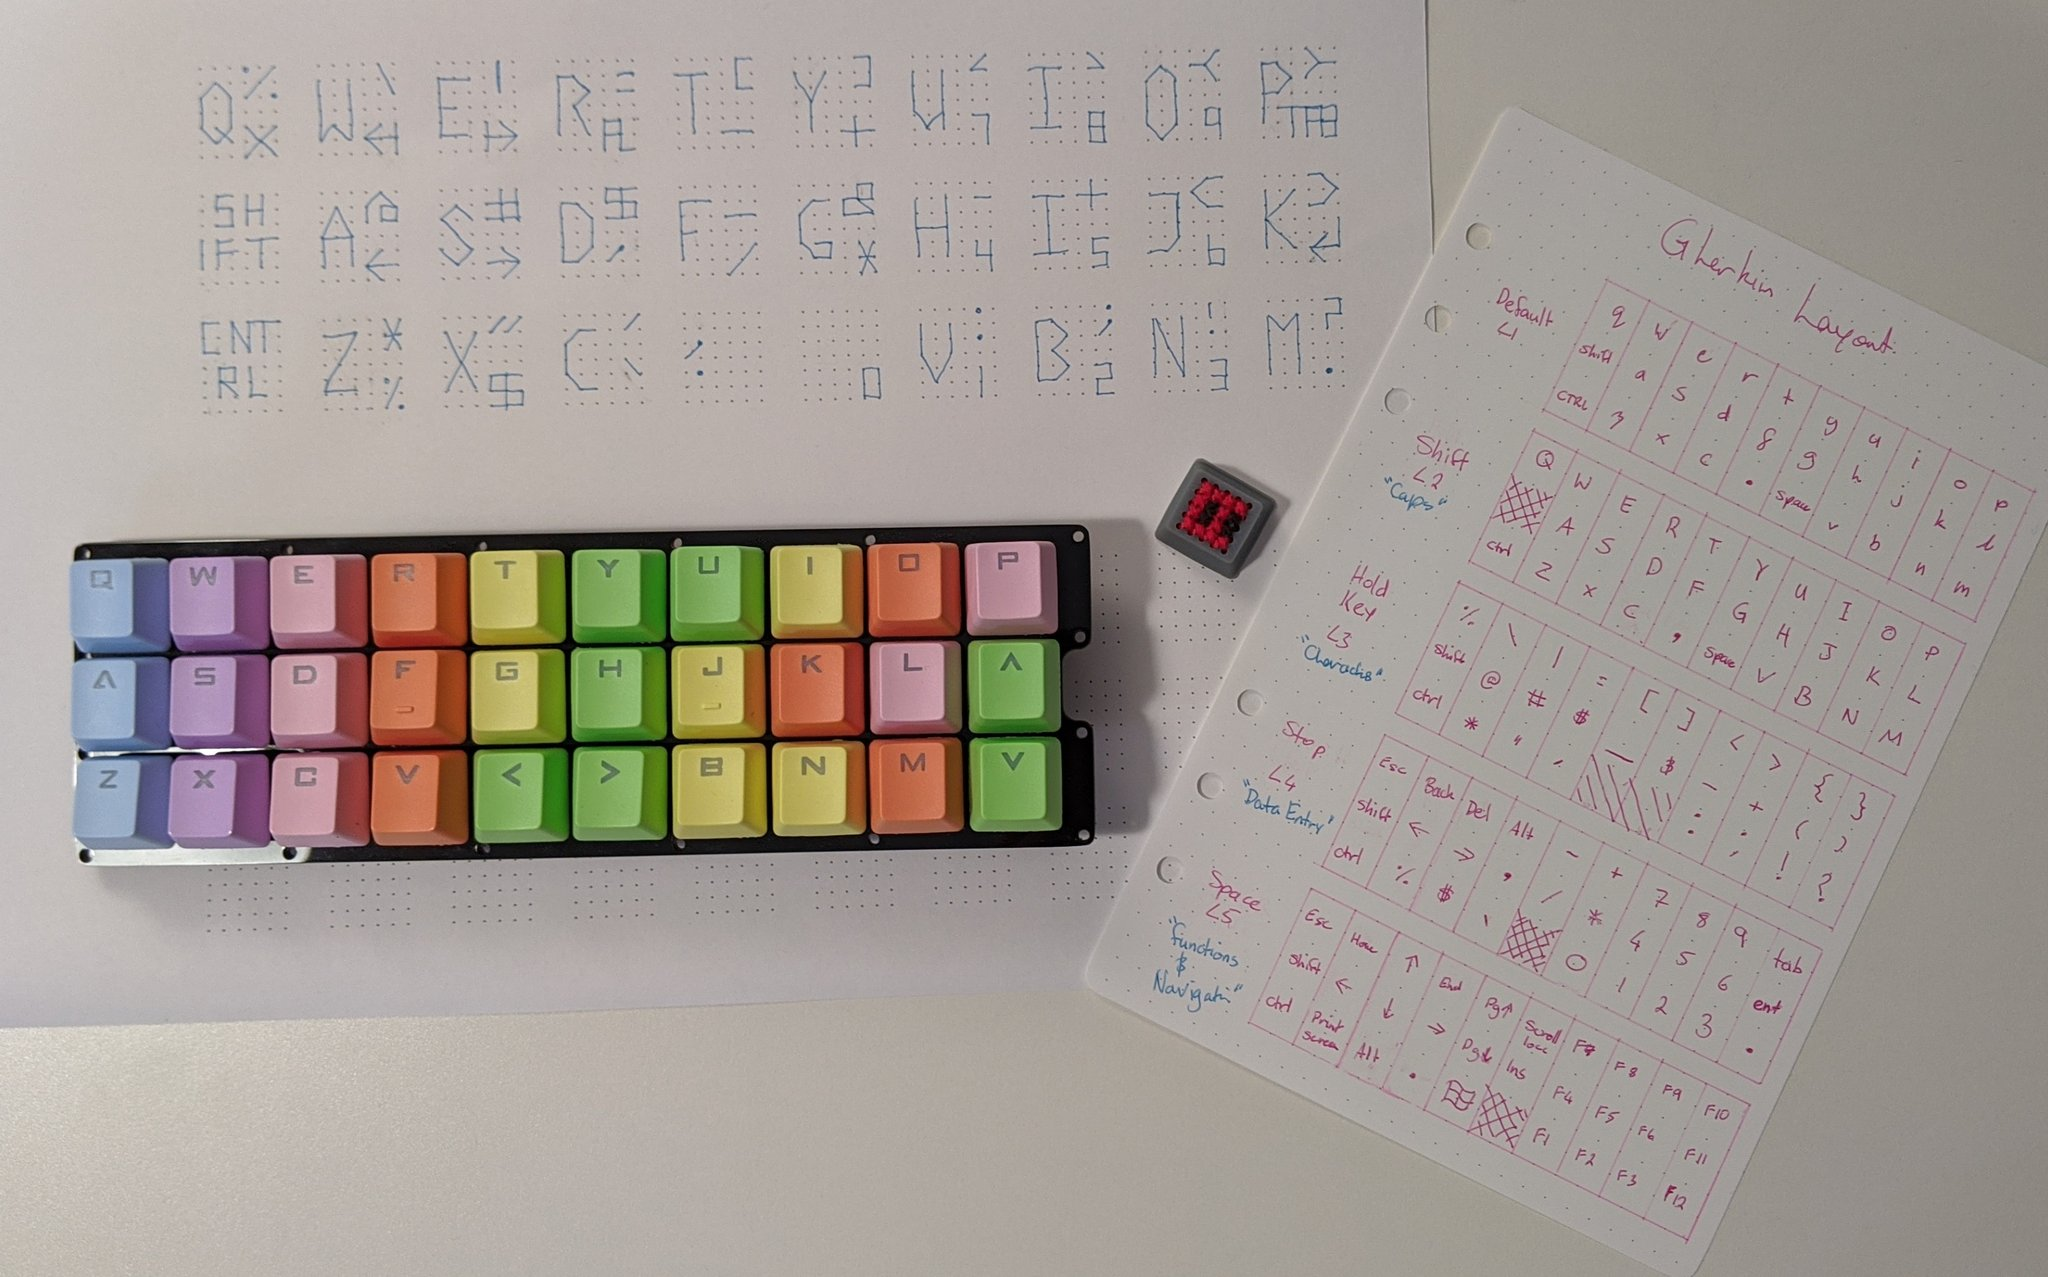 3D Printing and Cross Stitch Meet in a Creative Keycap | Make: